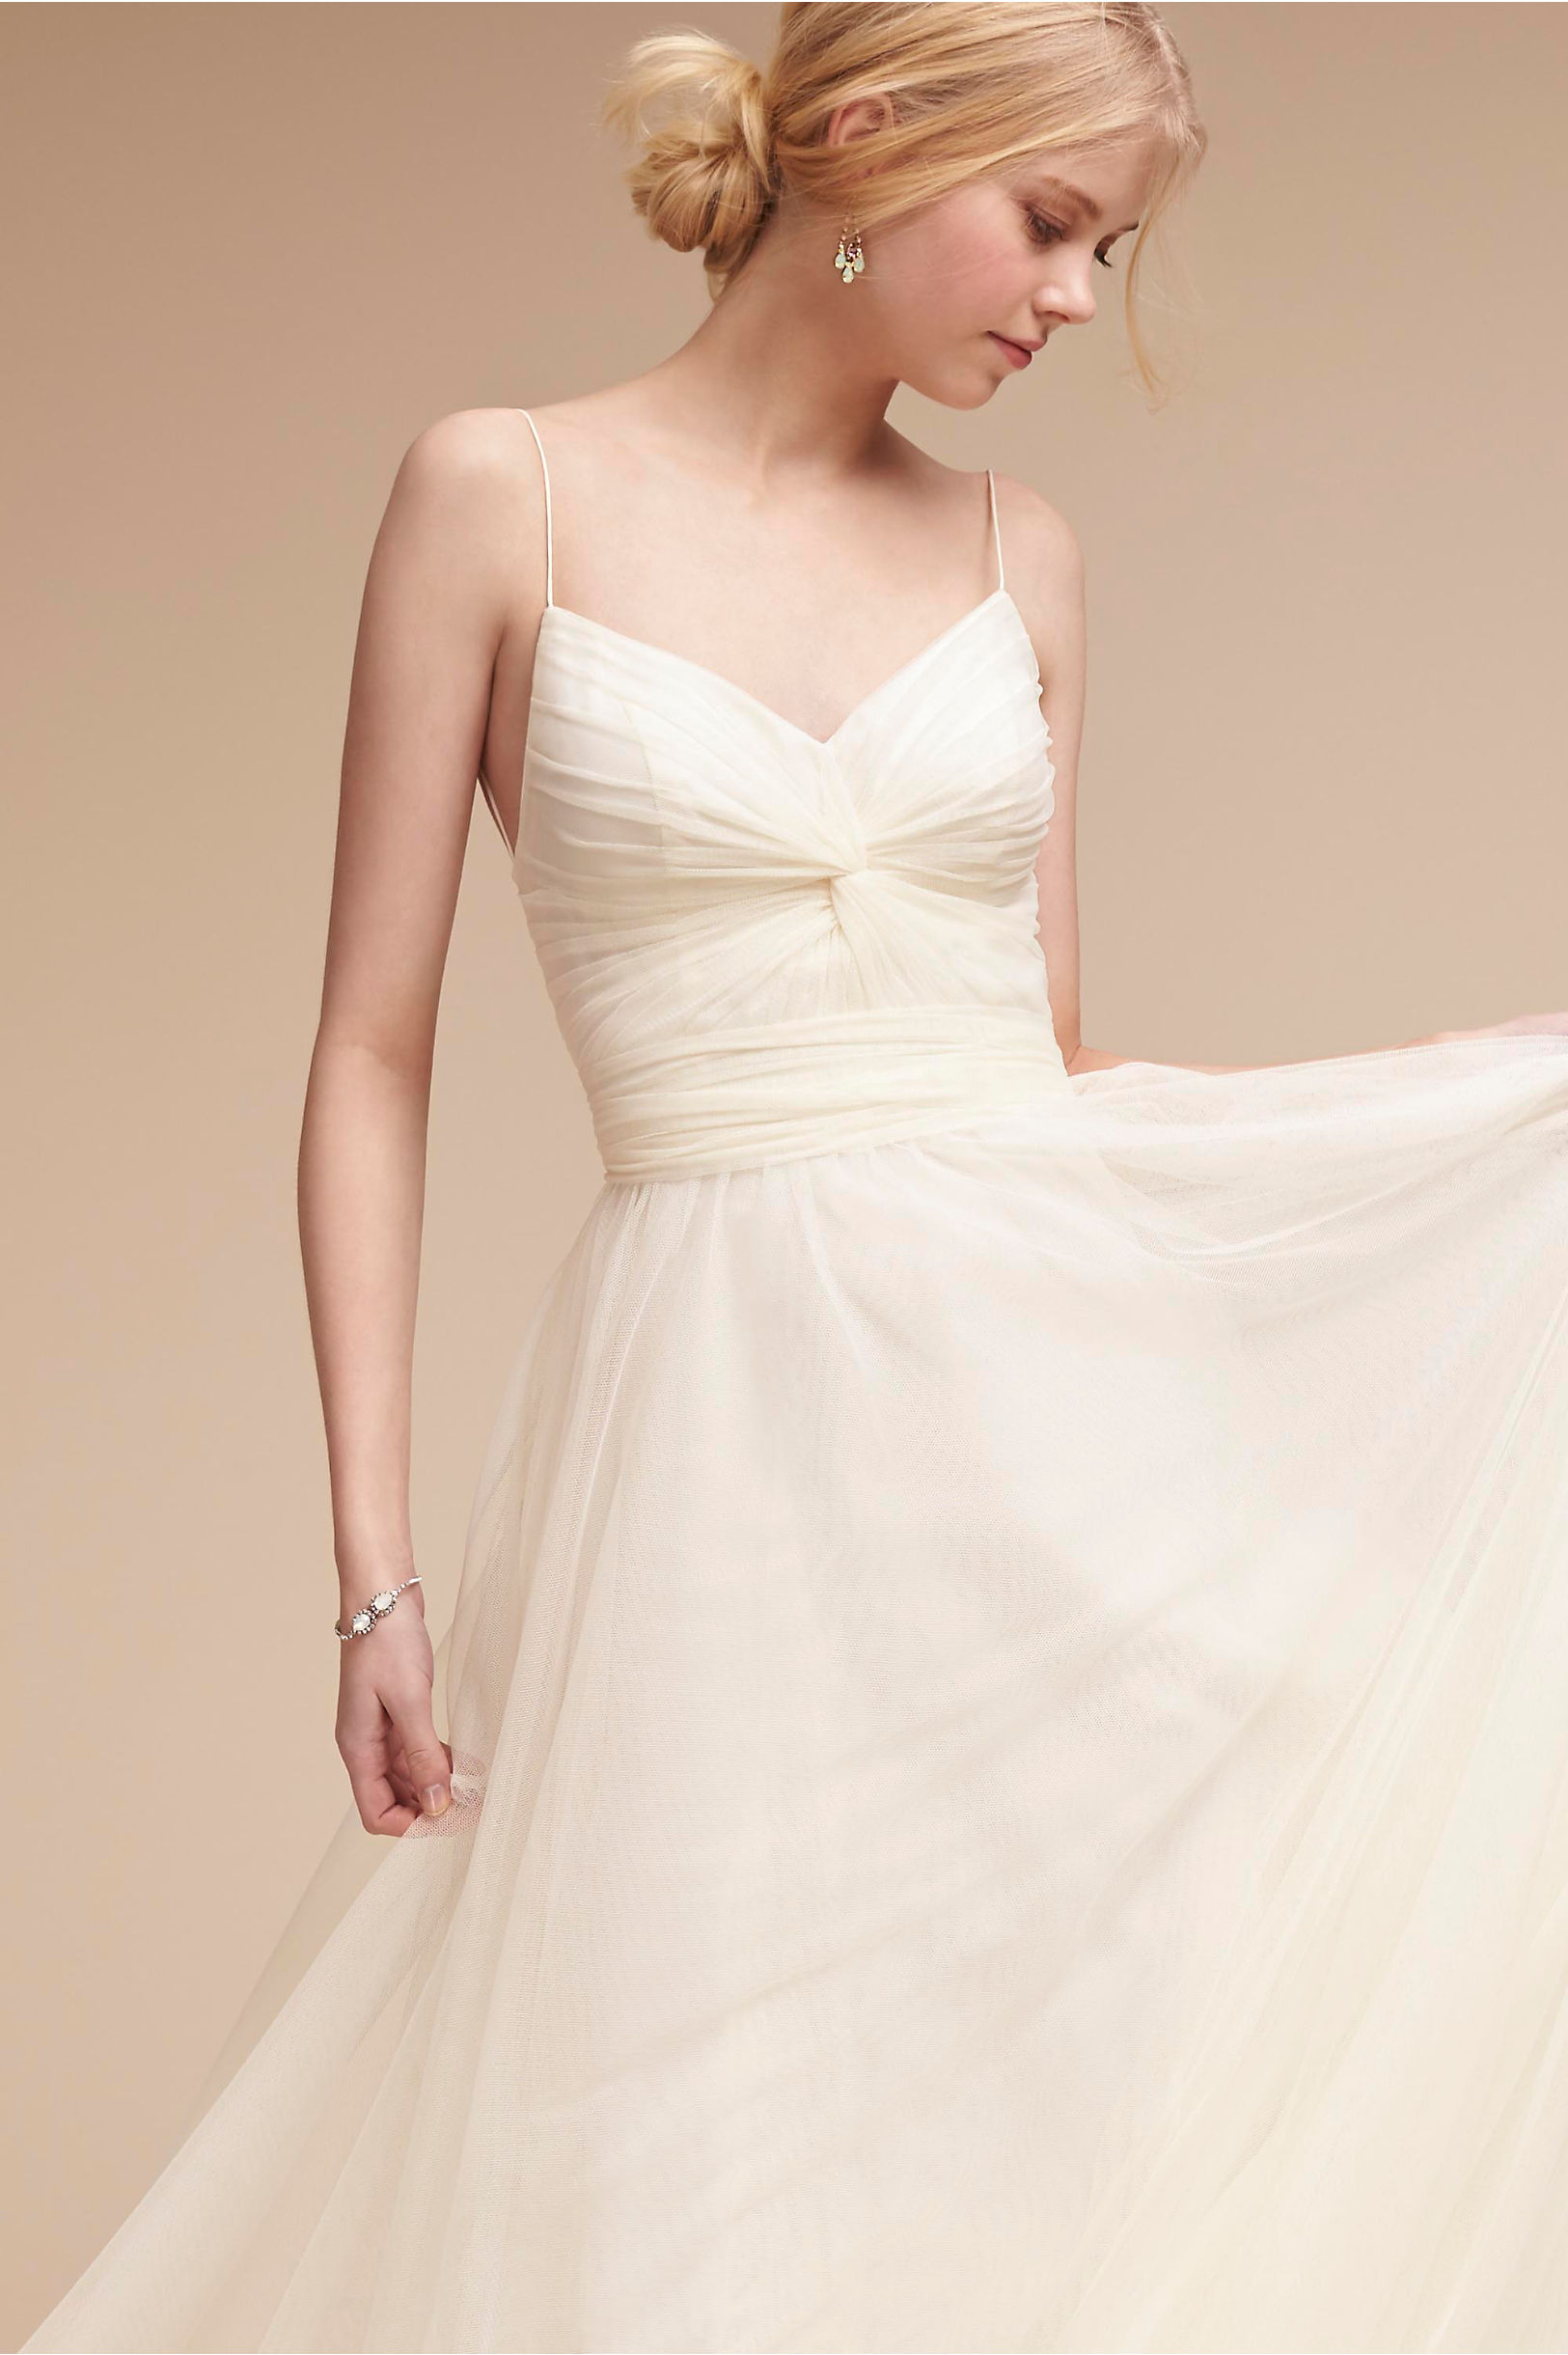 50+ Wedding Dresses Under $400